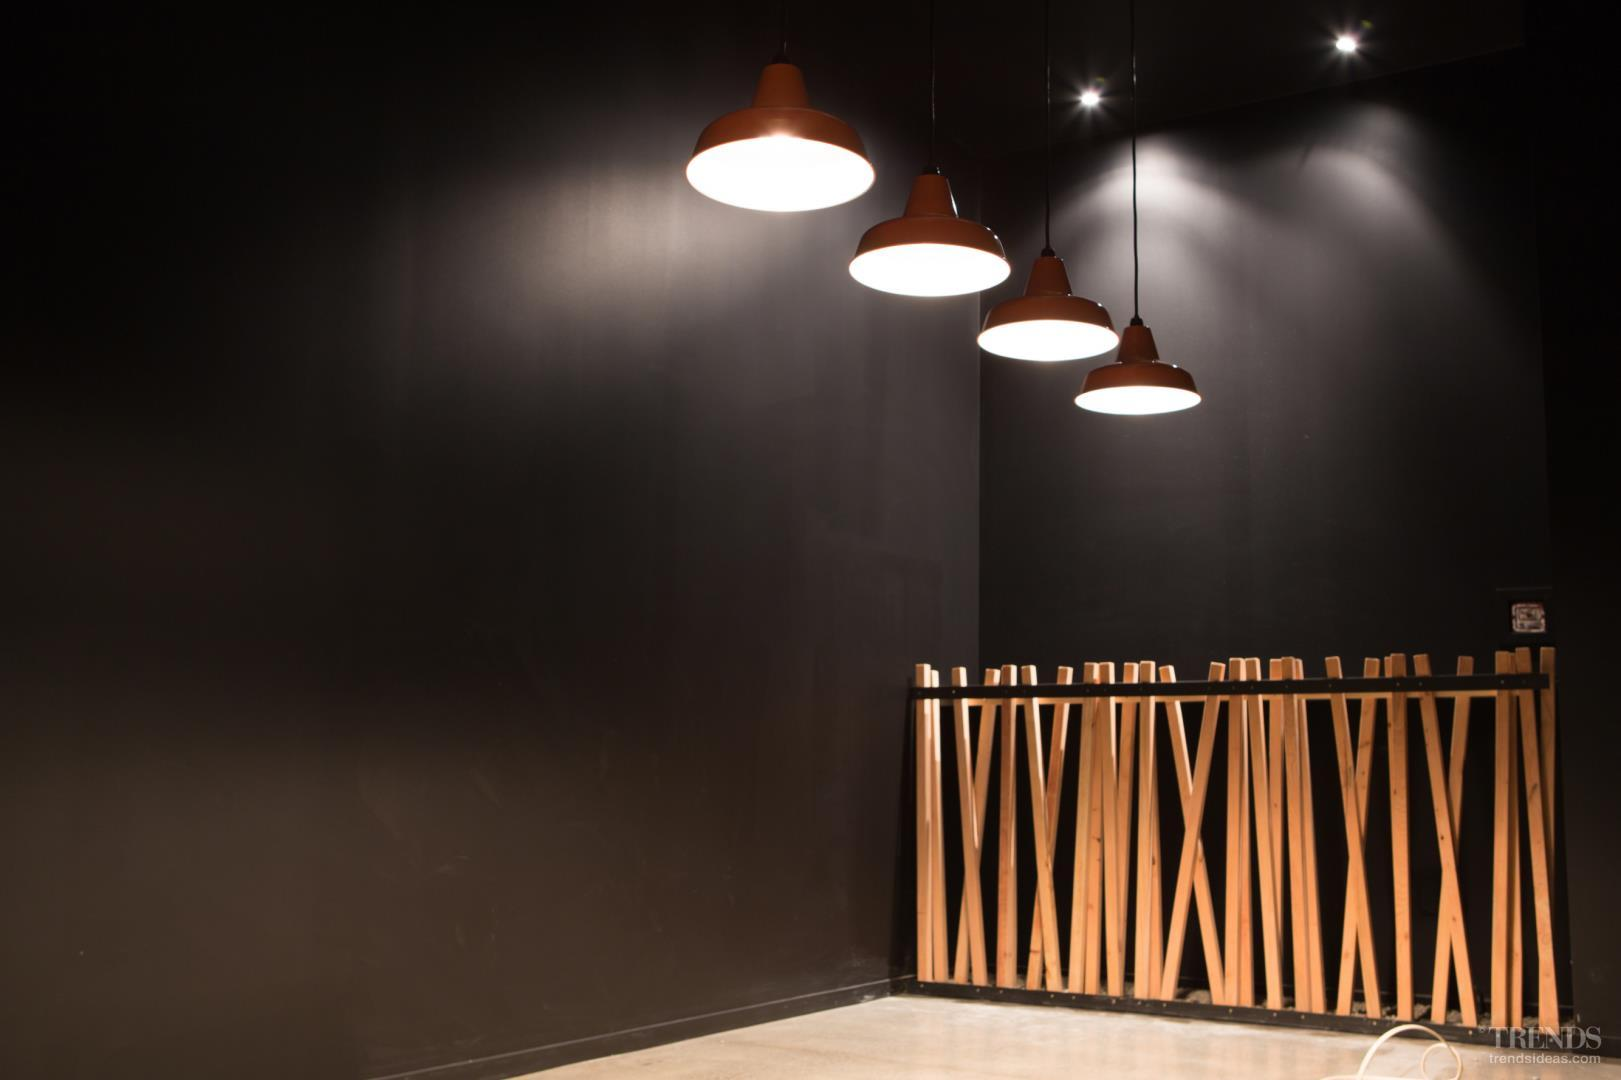 Contemporary, atmospheric fit-out breaks with traditional Korean restaurant design